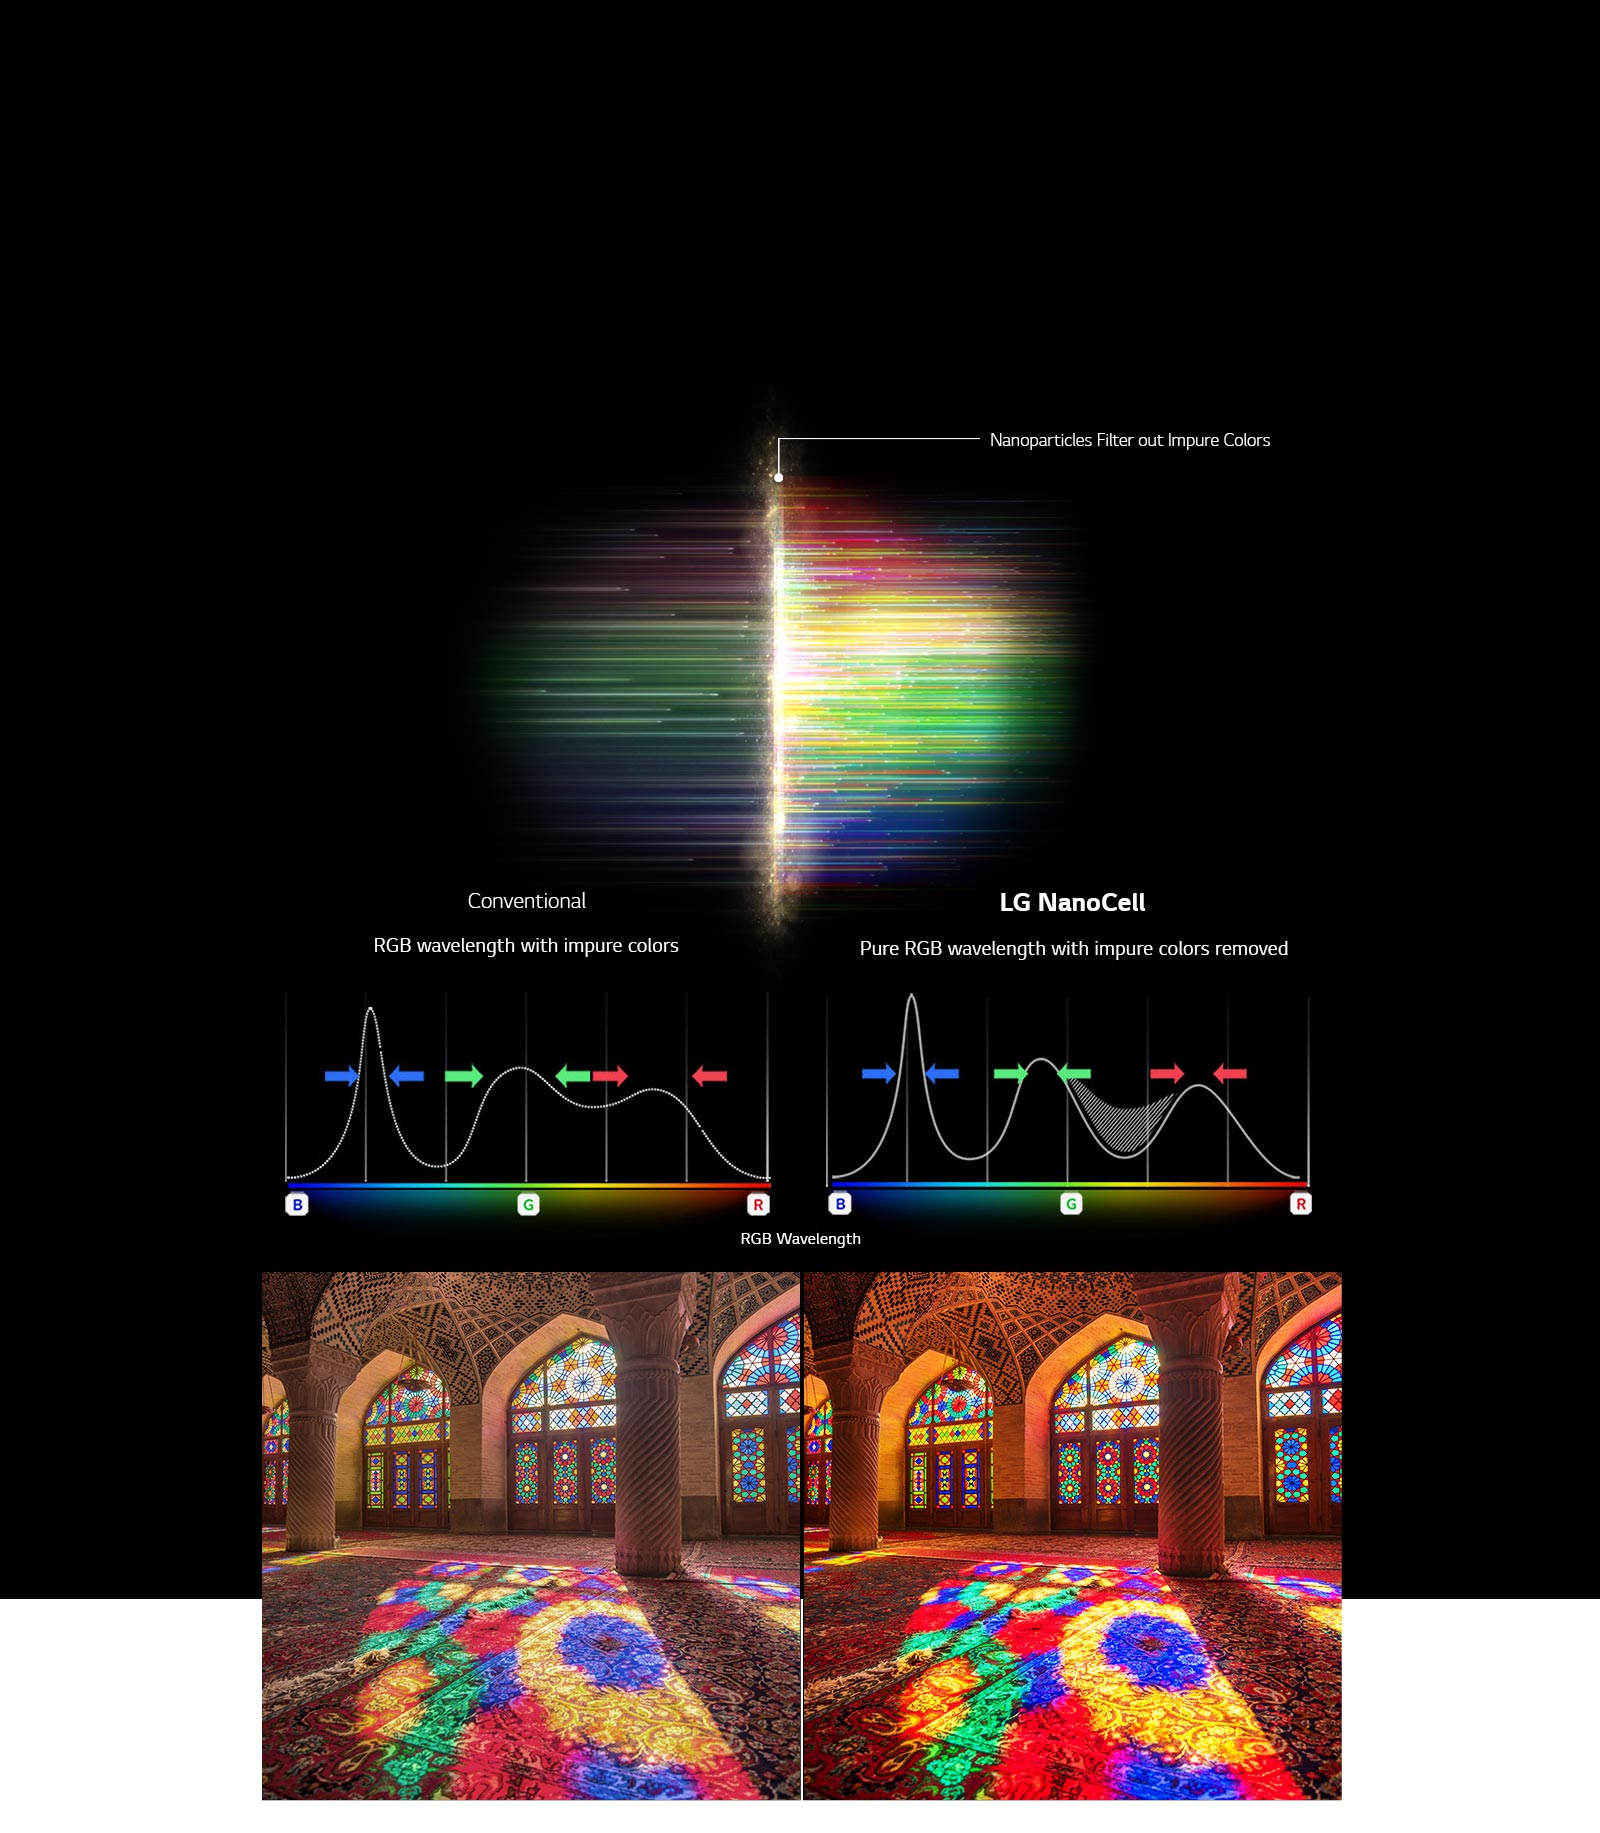 The RGB spectrum graph that showing filter out dull colors and images comparing Color Purity between Conventional and NanoCell Tech